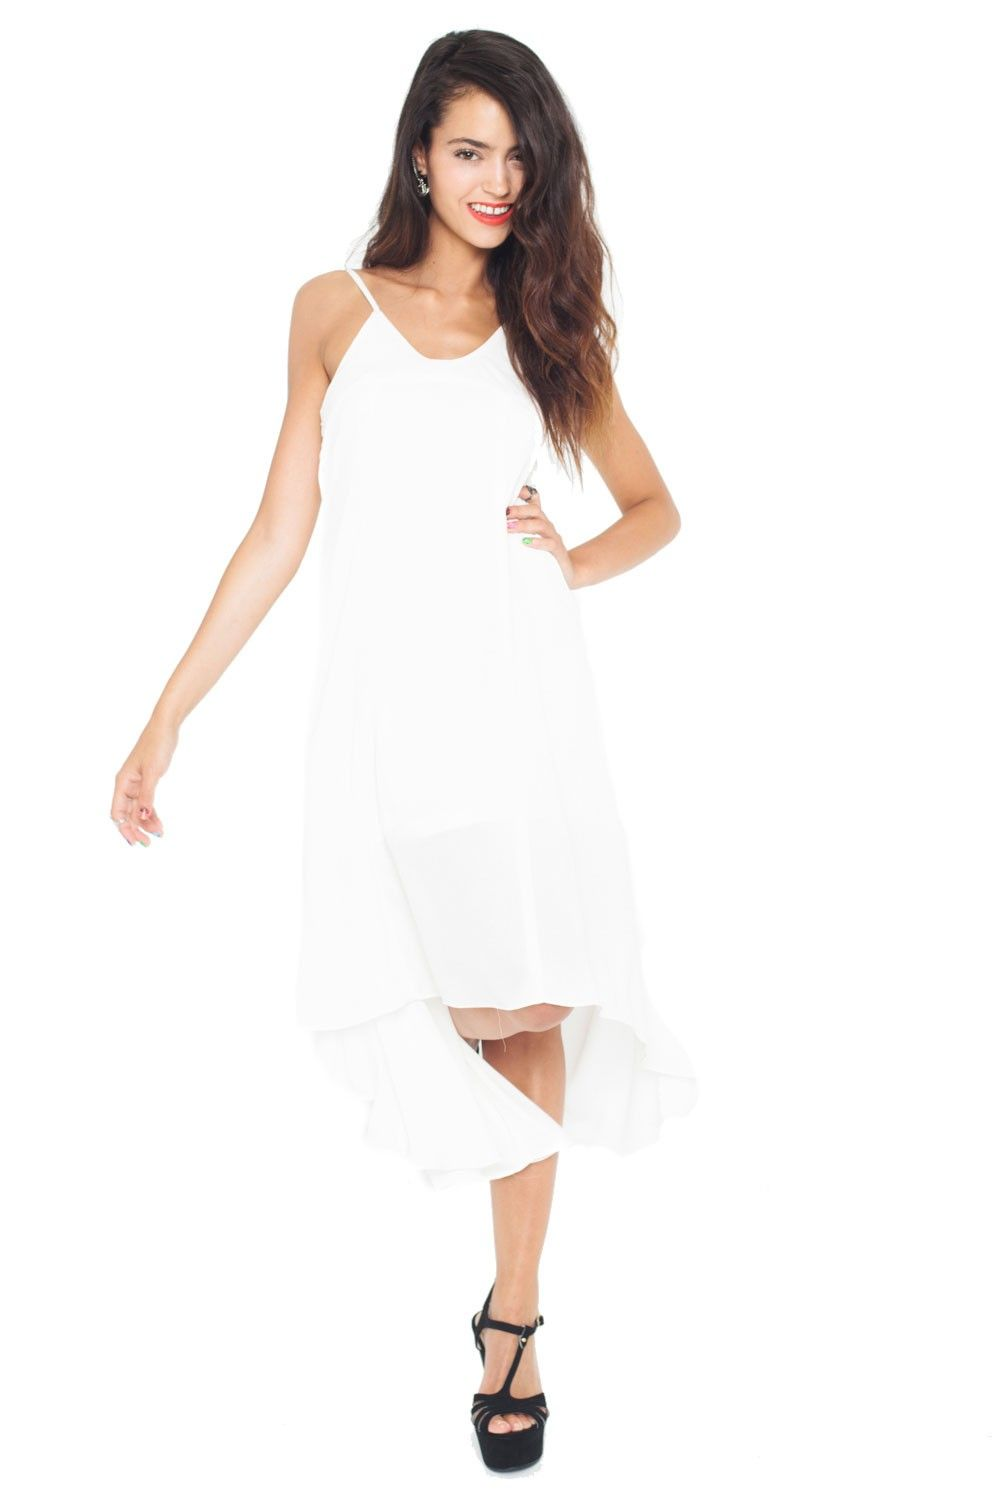 Vestido Soft Feelings blanco.